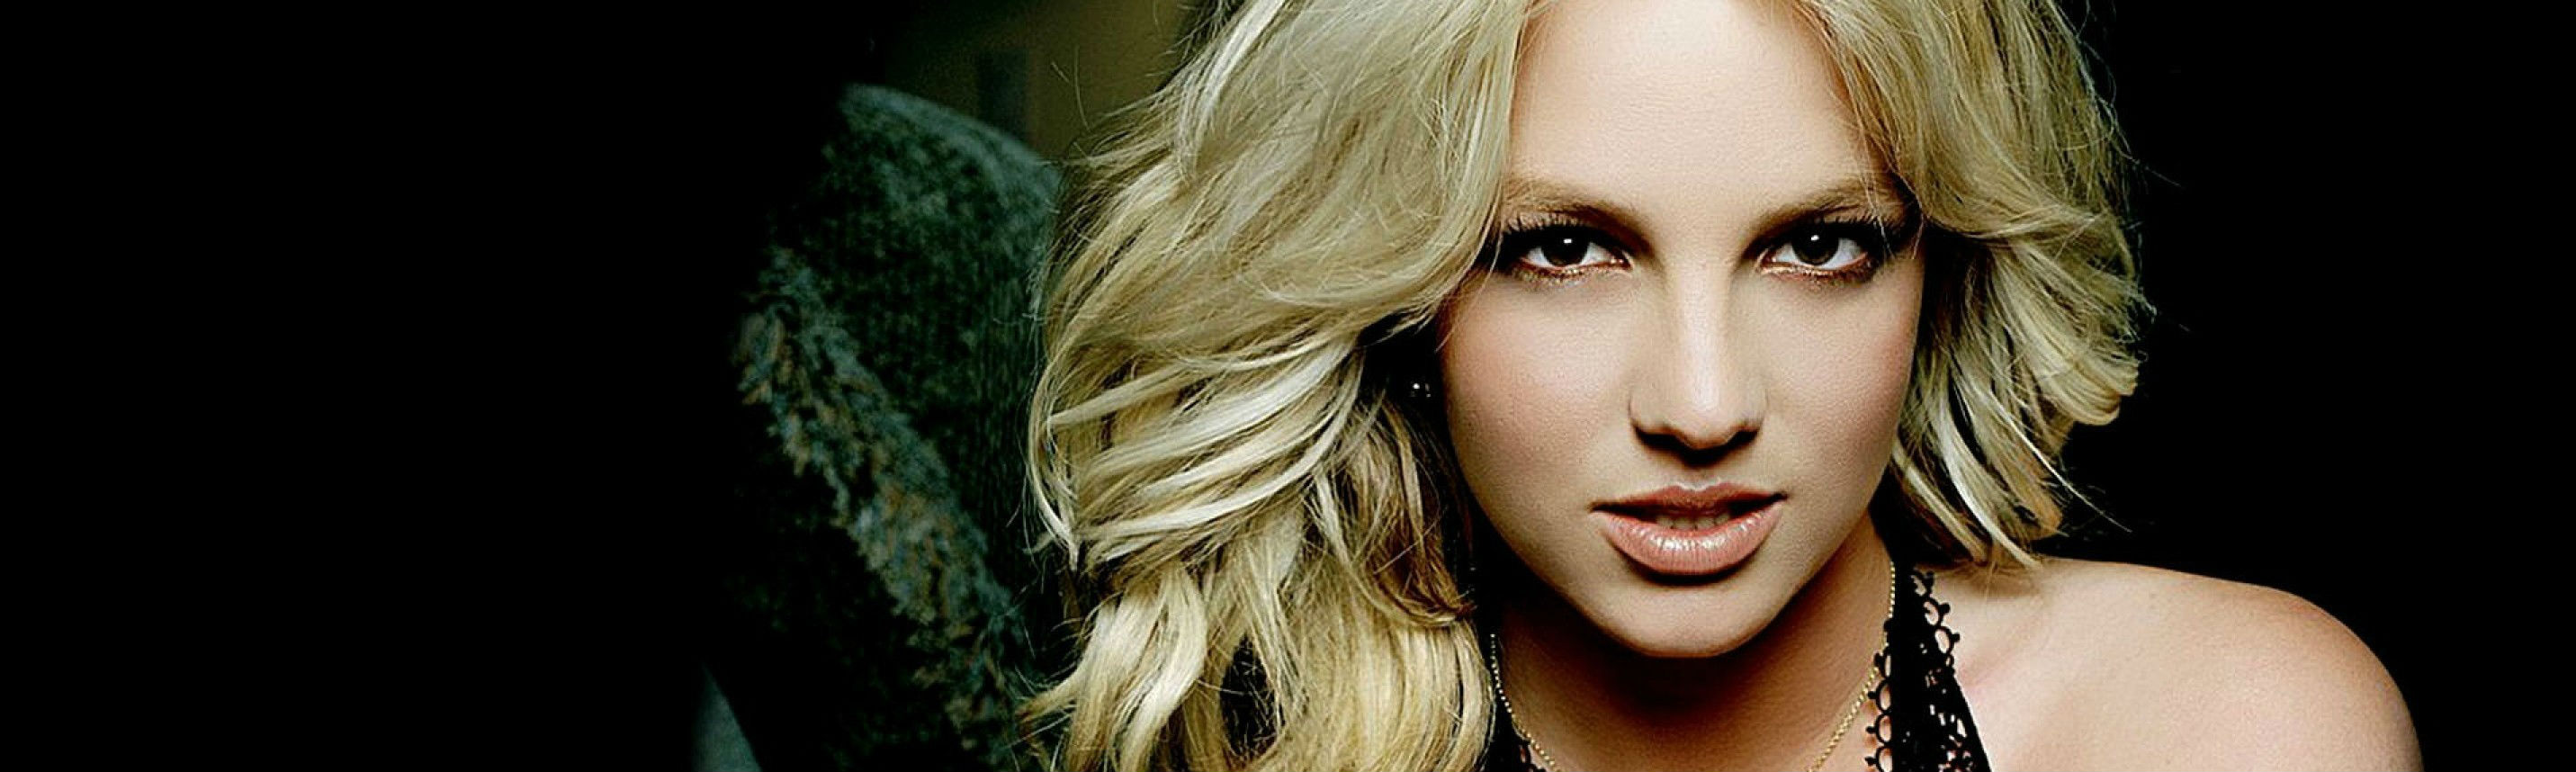 Britney spears hot 2014 hd wallpapers